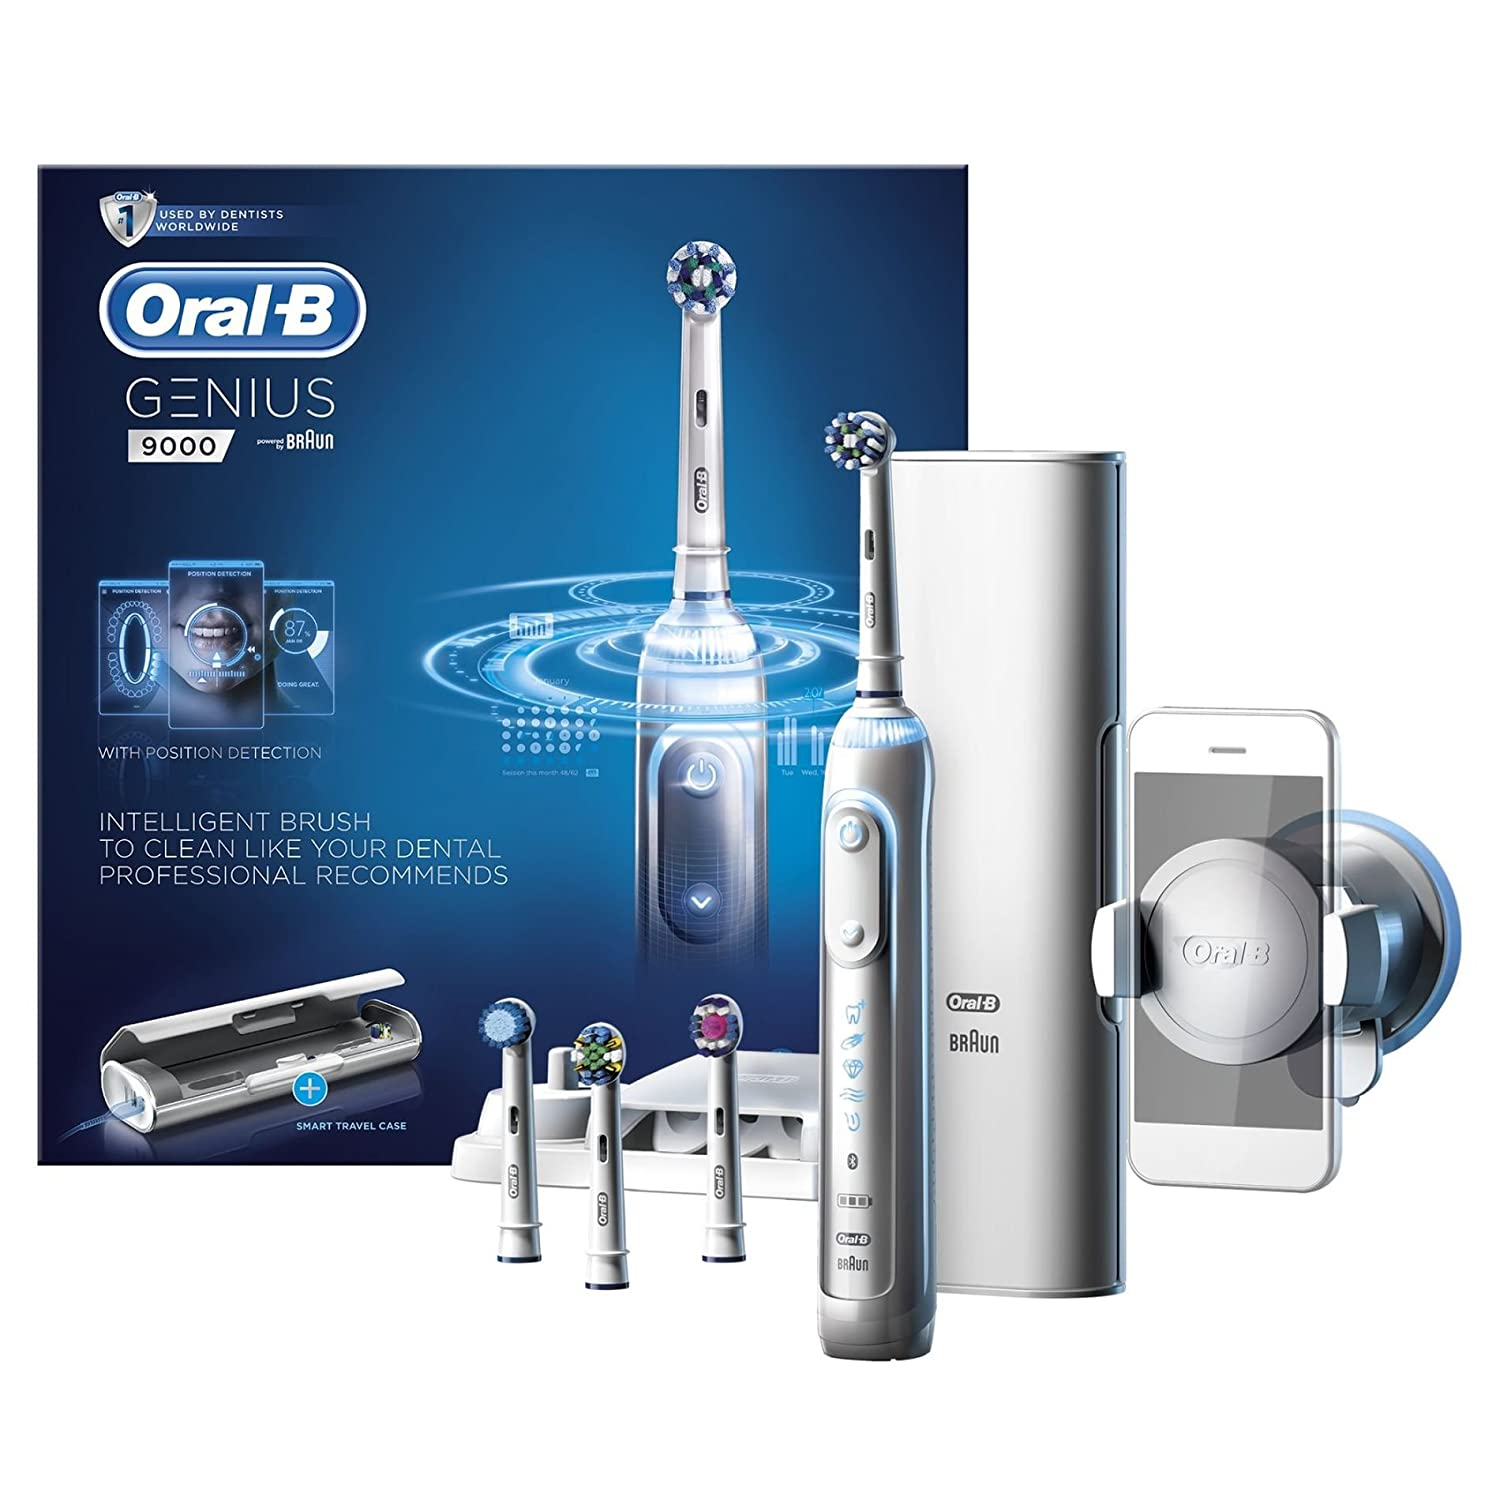 Electric toothbrush review